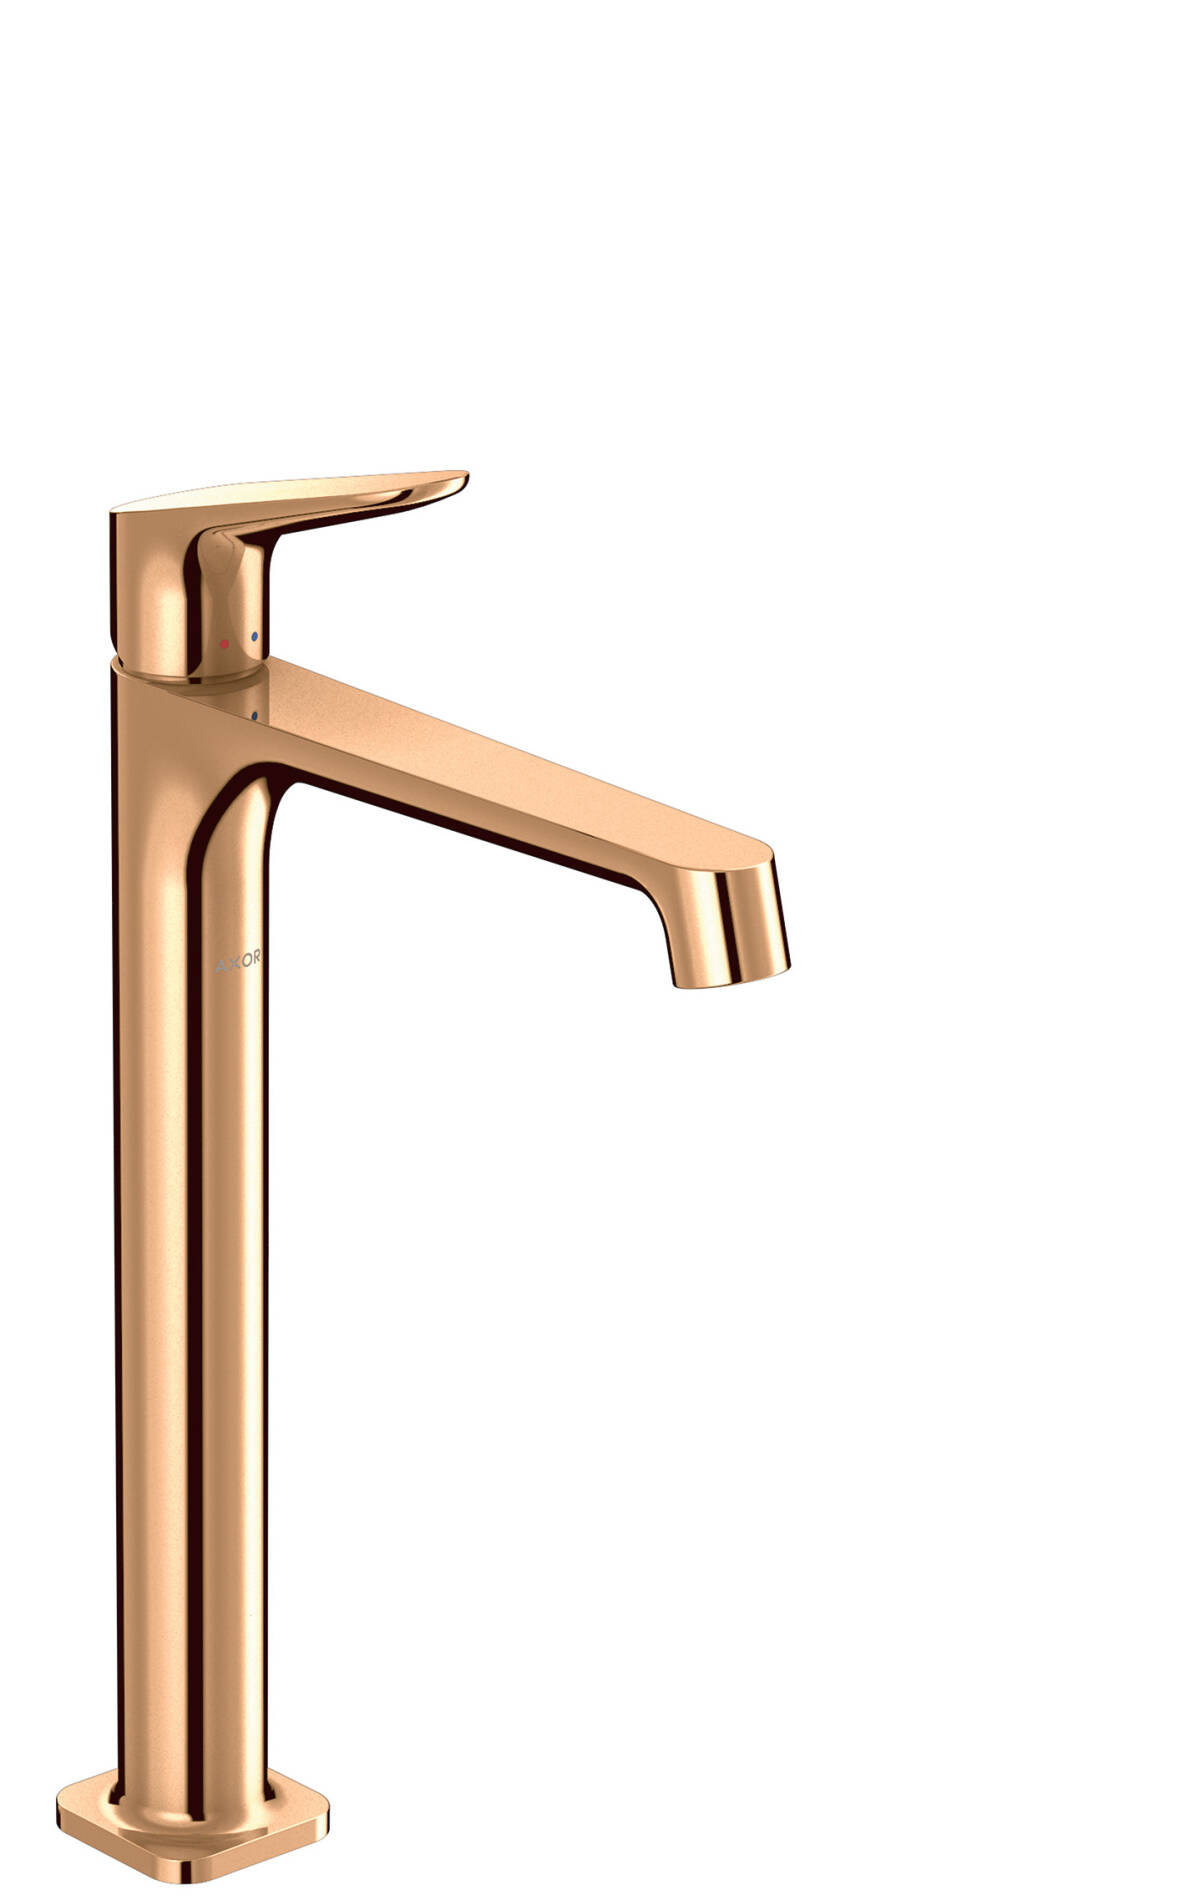 Single lever basin mixer 250 without pull-rod for wash bowls, Polished Bronze, 34127130